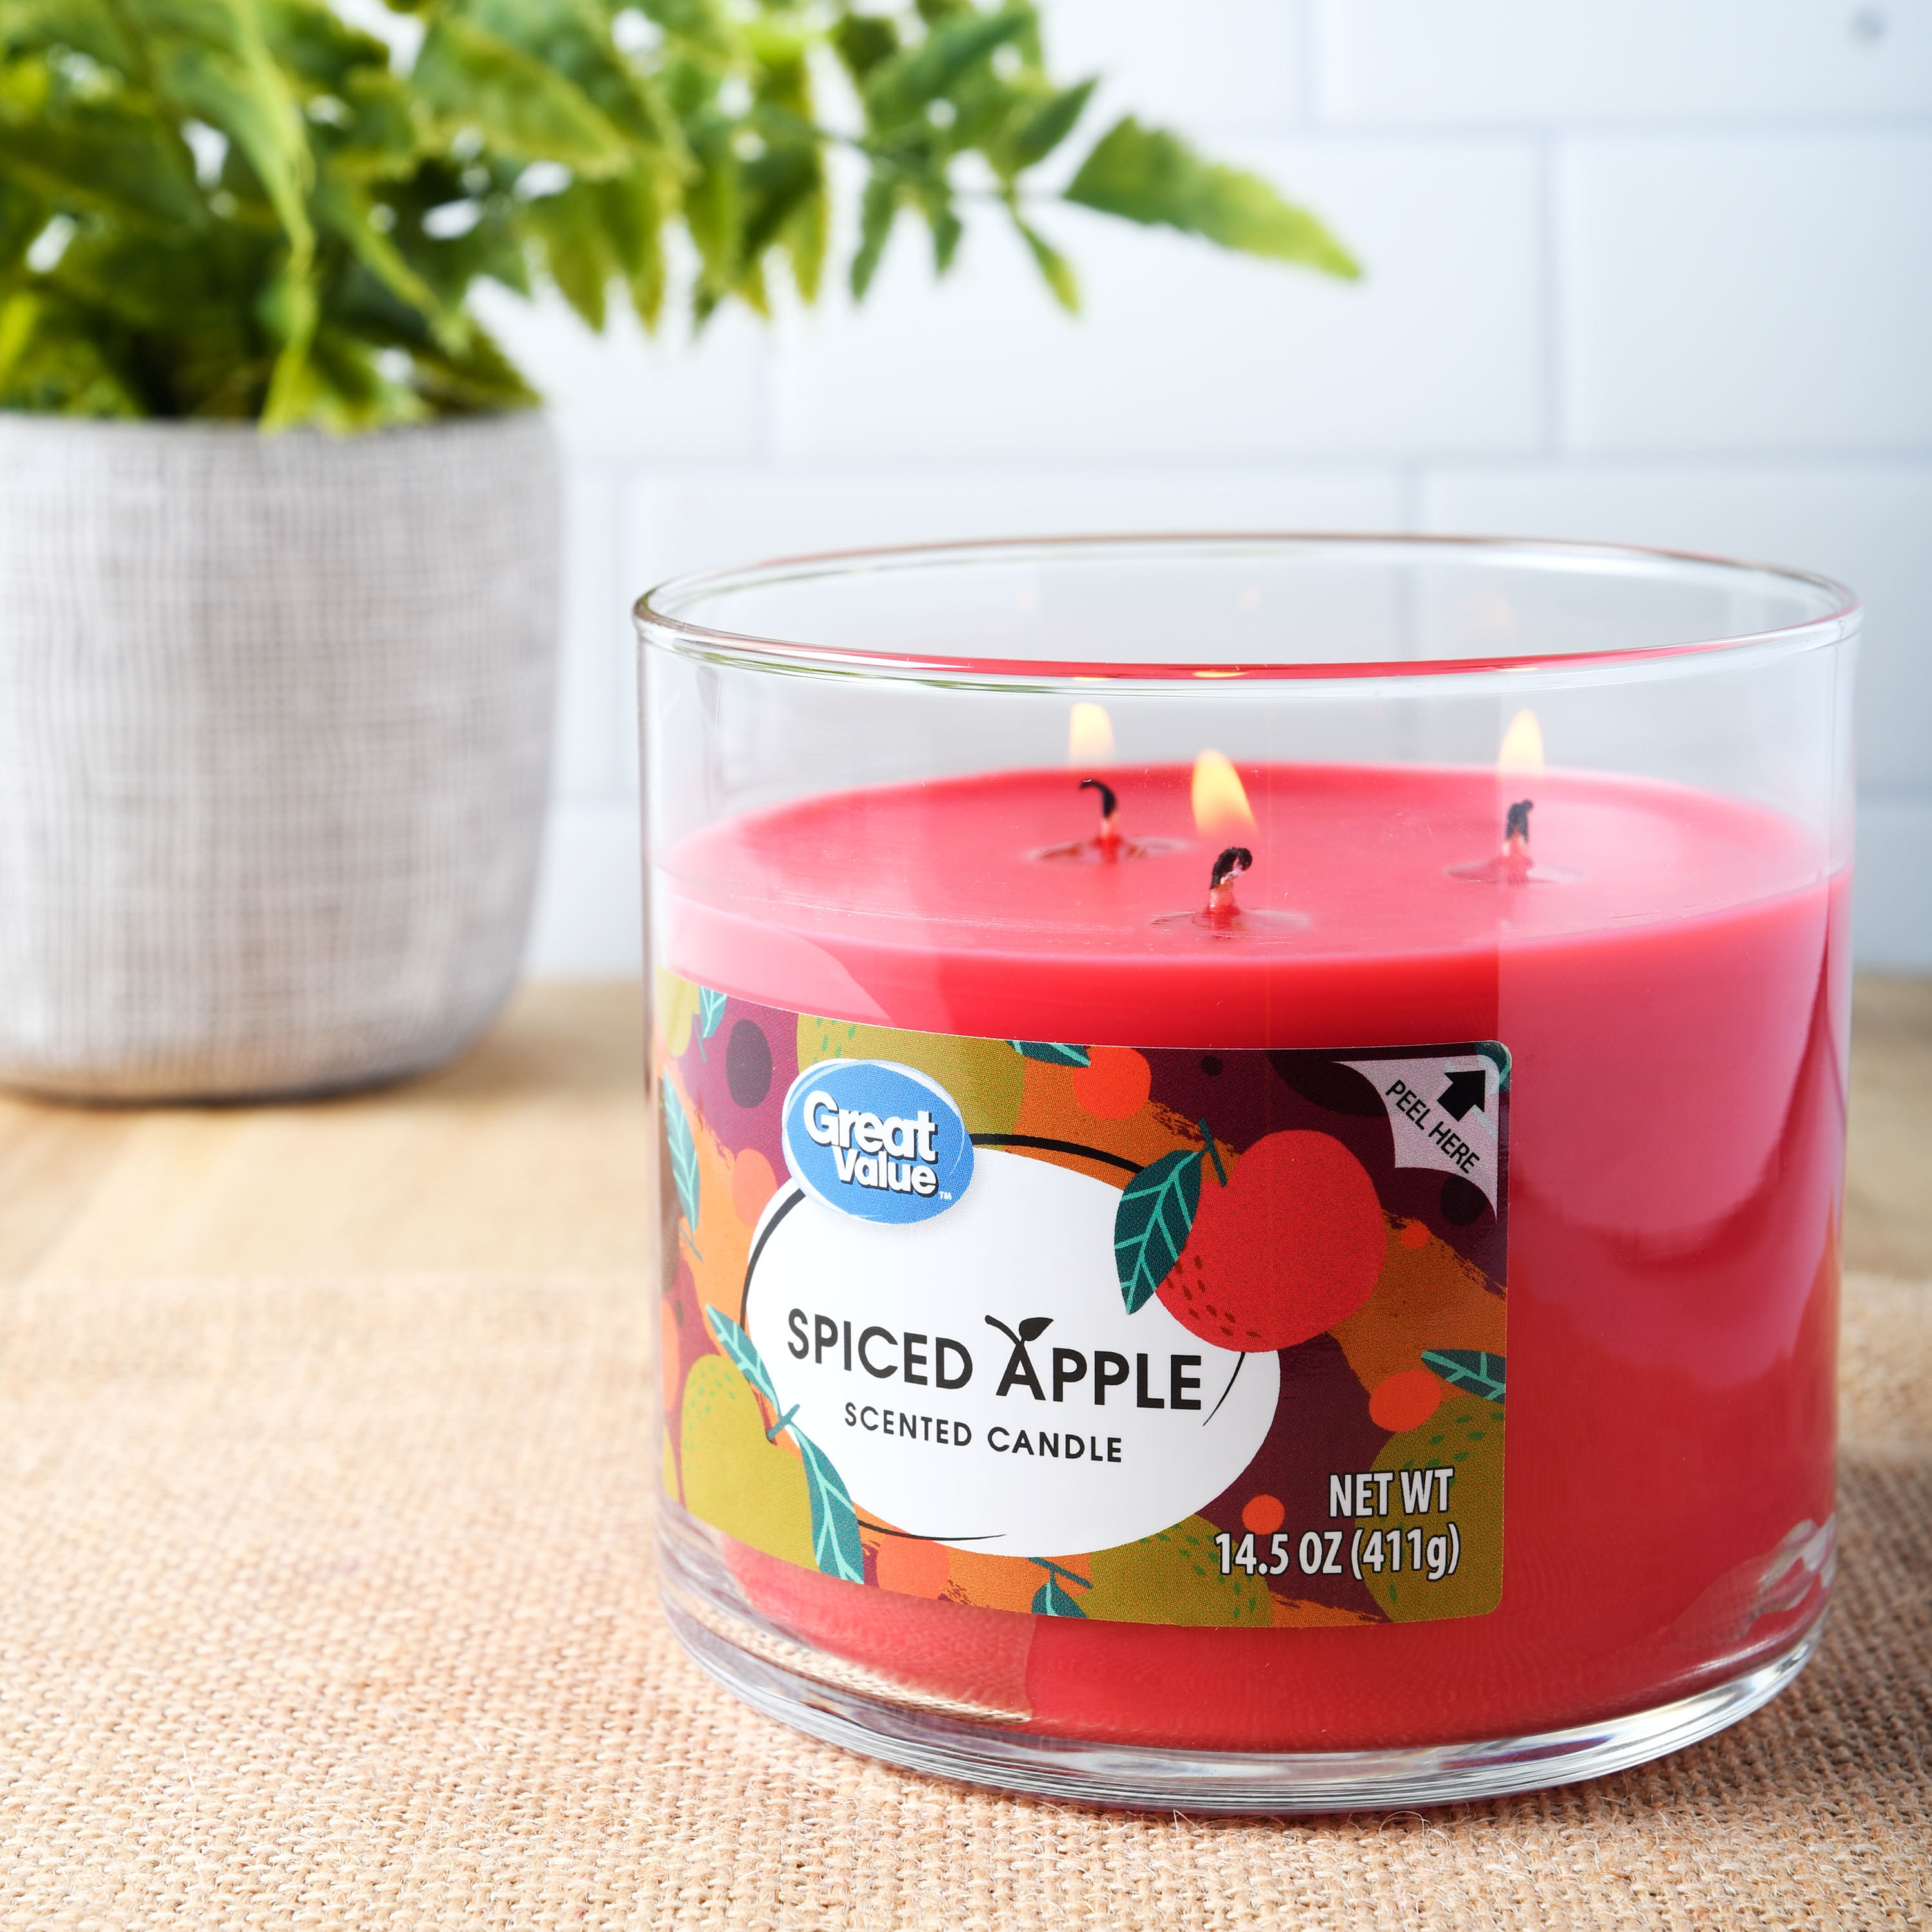 The red spiced apple candle